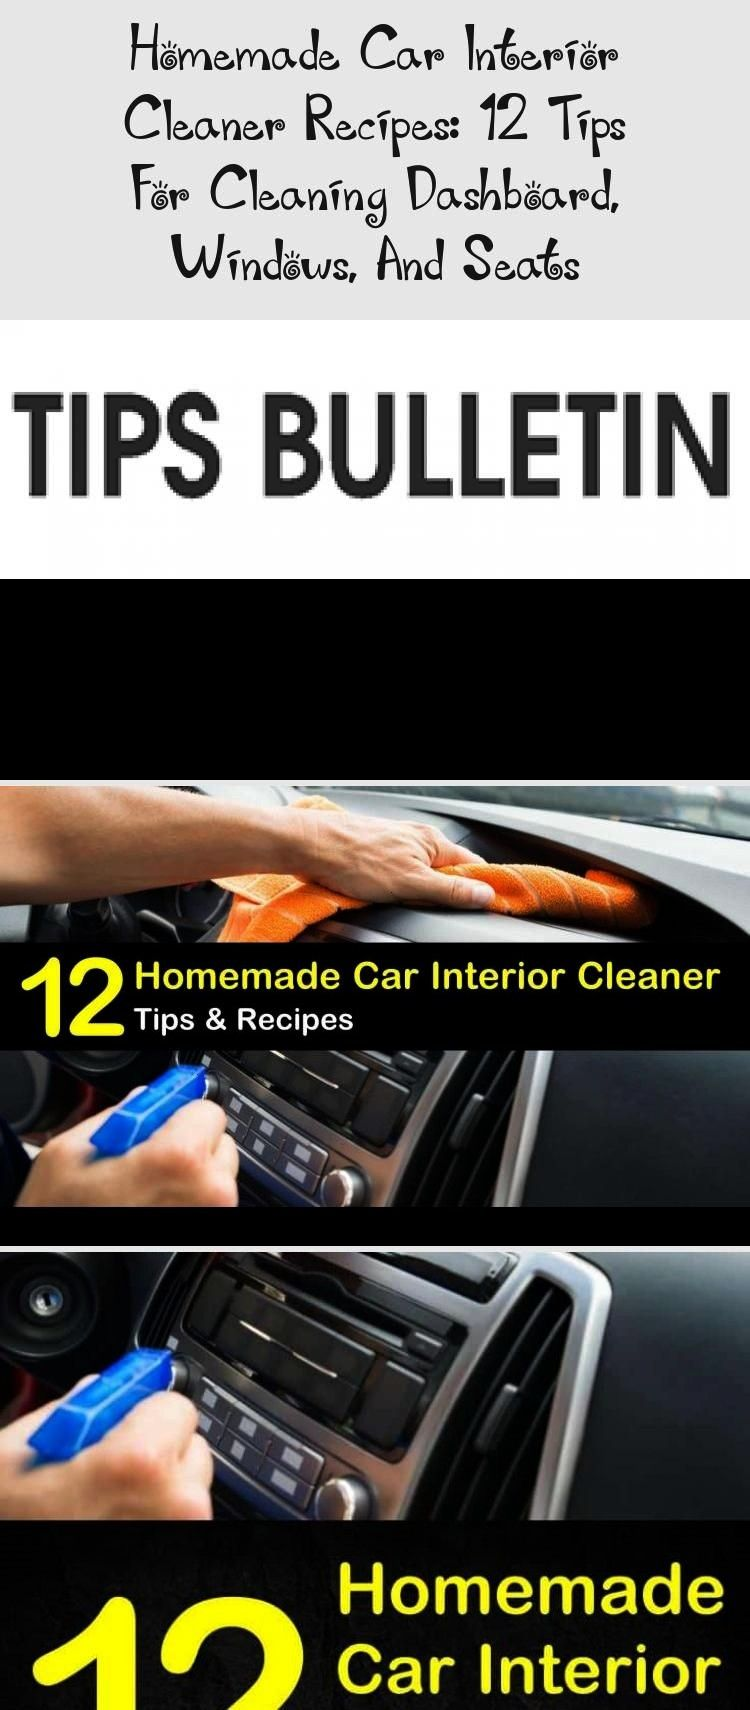 Car Interior Cleaner Recipes: 12 Tips For Cleaning Dashboard, Windows, and SeatsHomemade Car Interi